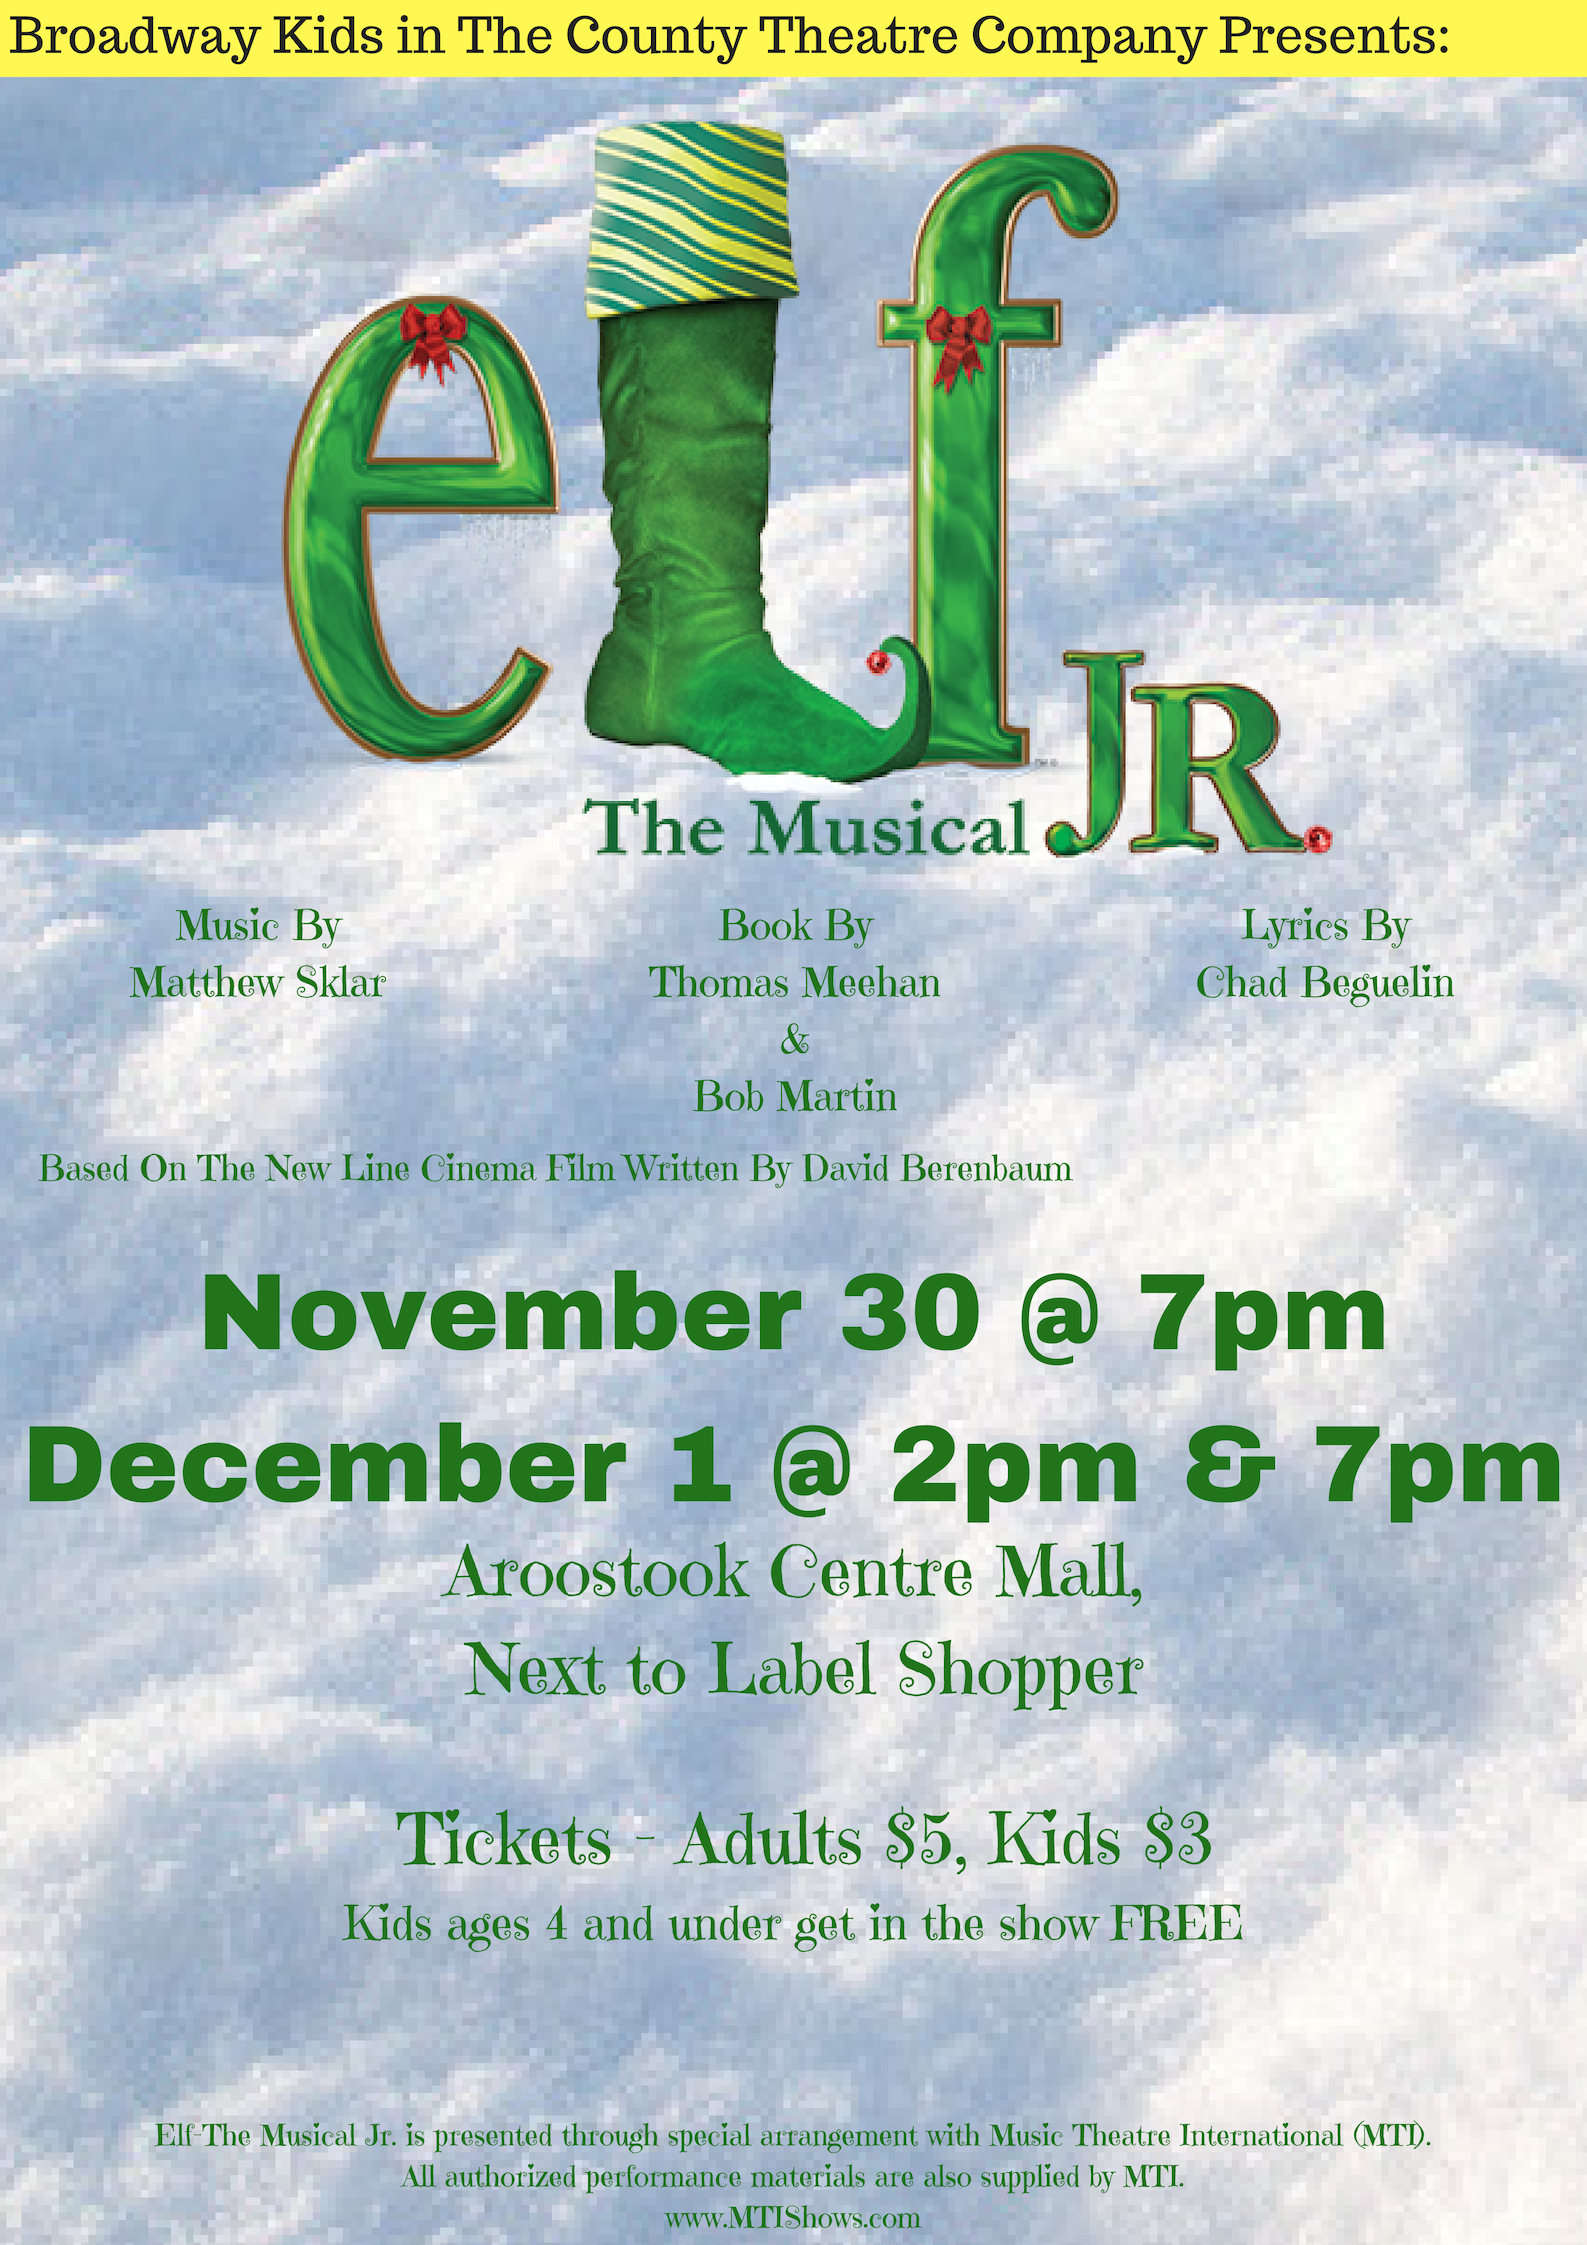 Elf Junior the Musical - A title known the world over, Elf The Musical JR. is a must-produce holiday musical that can easily become an annual tradition for any theatre. Based on the cherished New Line Cinema hit, Elf JR. features songs by Tony Award-nominees, Matthew Sklar and Chad Beguelin, with a book by Tony Award-winners, Thomas Meehan and Bob Martin.Buddy, a young orphan, mistakenly crawls into Santa's bag of gifts and is transported to the North Pole. The would-be elf is raised, unaware that he is actually a human, until his enormous size and poor toy-making abilities cause him to face the truth. With Santa's permission, Buddy embarks on a journey to New York City to find his birth father and discover his true identity. Faced with the harsh reality that his father is on the naughty list and that his half-brother doesn't even believe in Santa, Buddy is determined to win over his new family and help New York remember the true meaning of Christmas.This modern-day holiday classic is sure to make every young performer embrace his or her